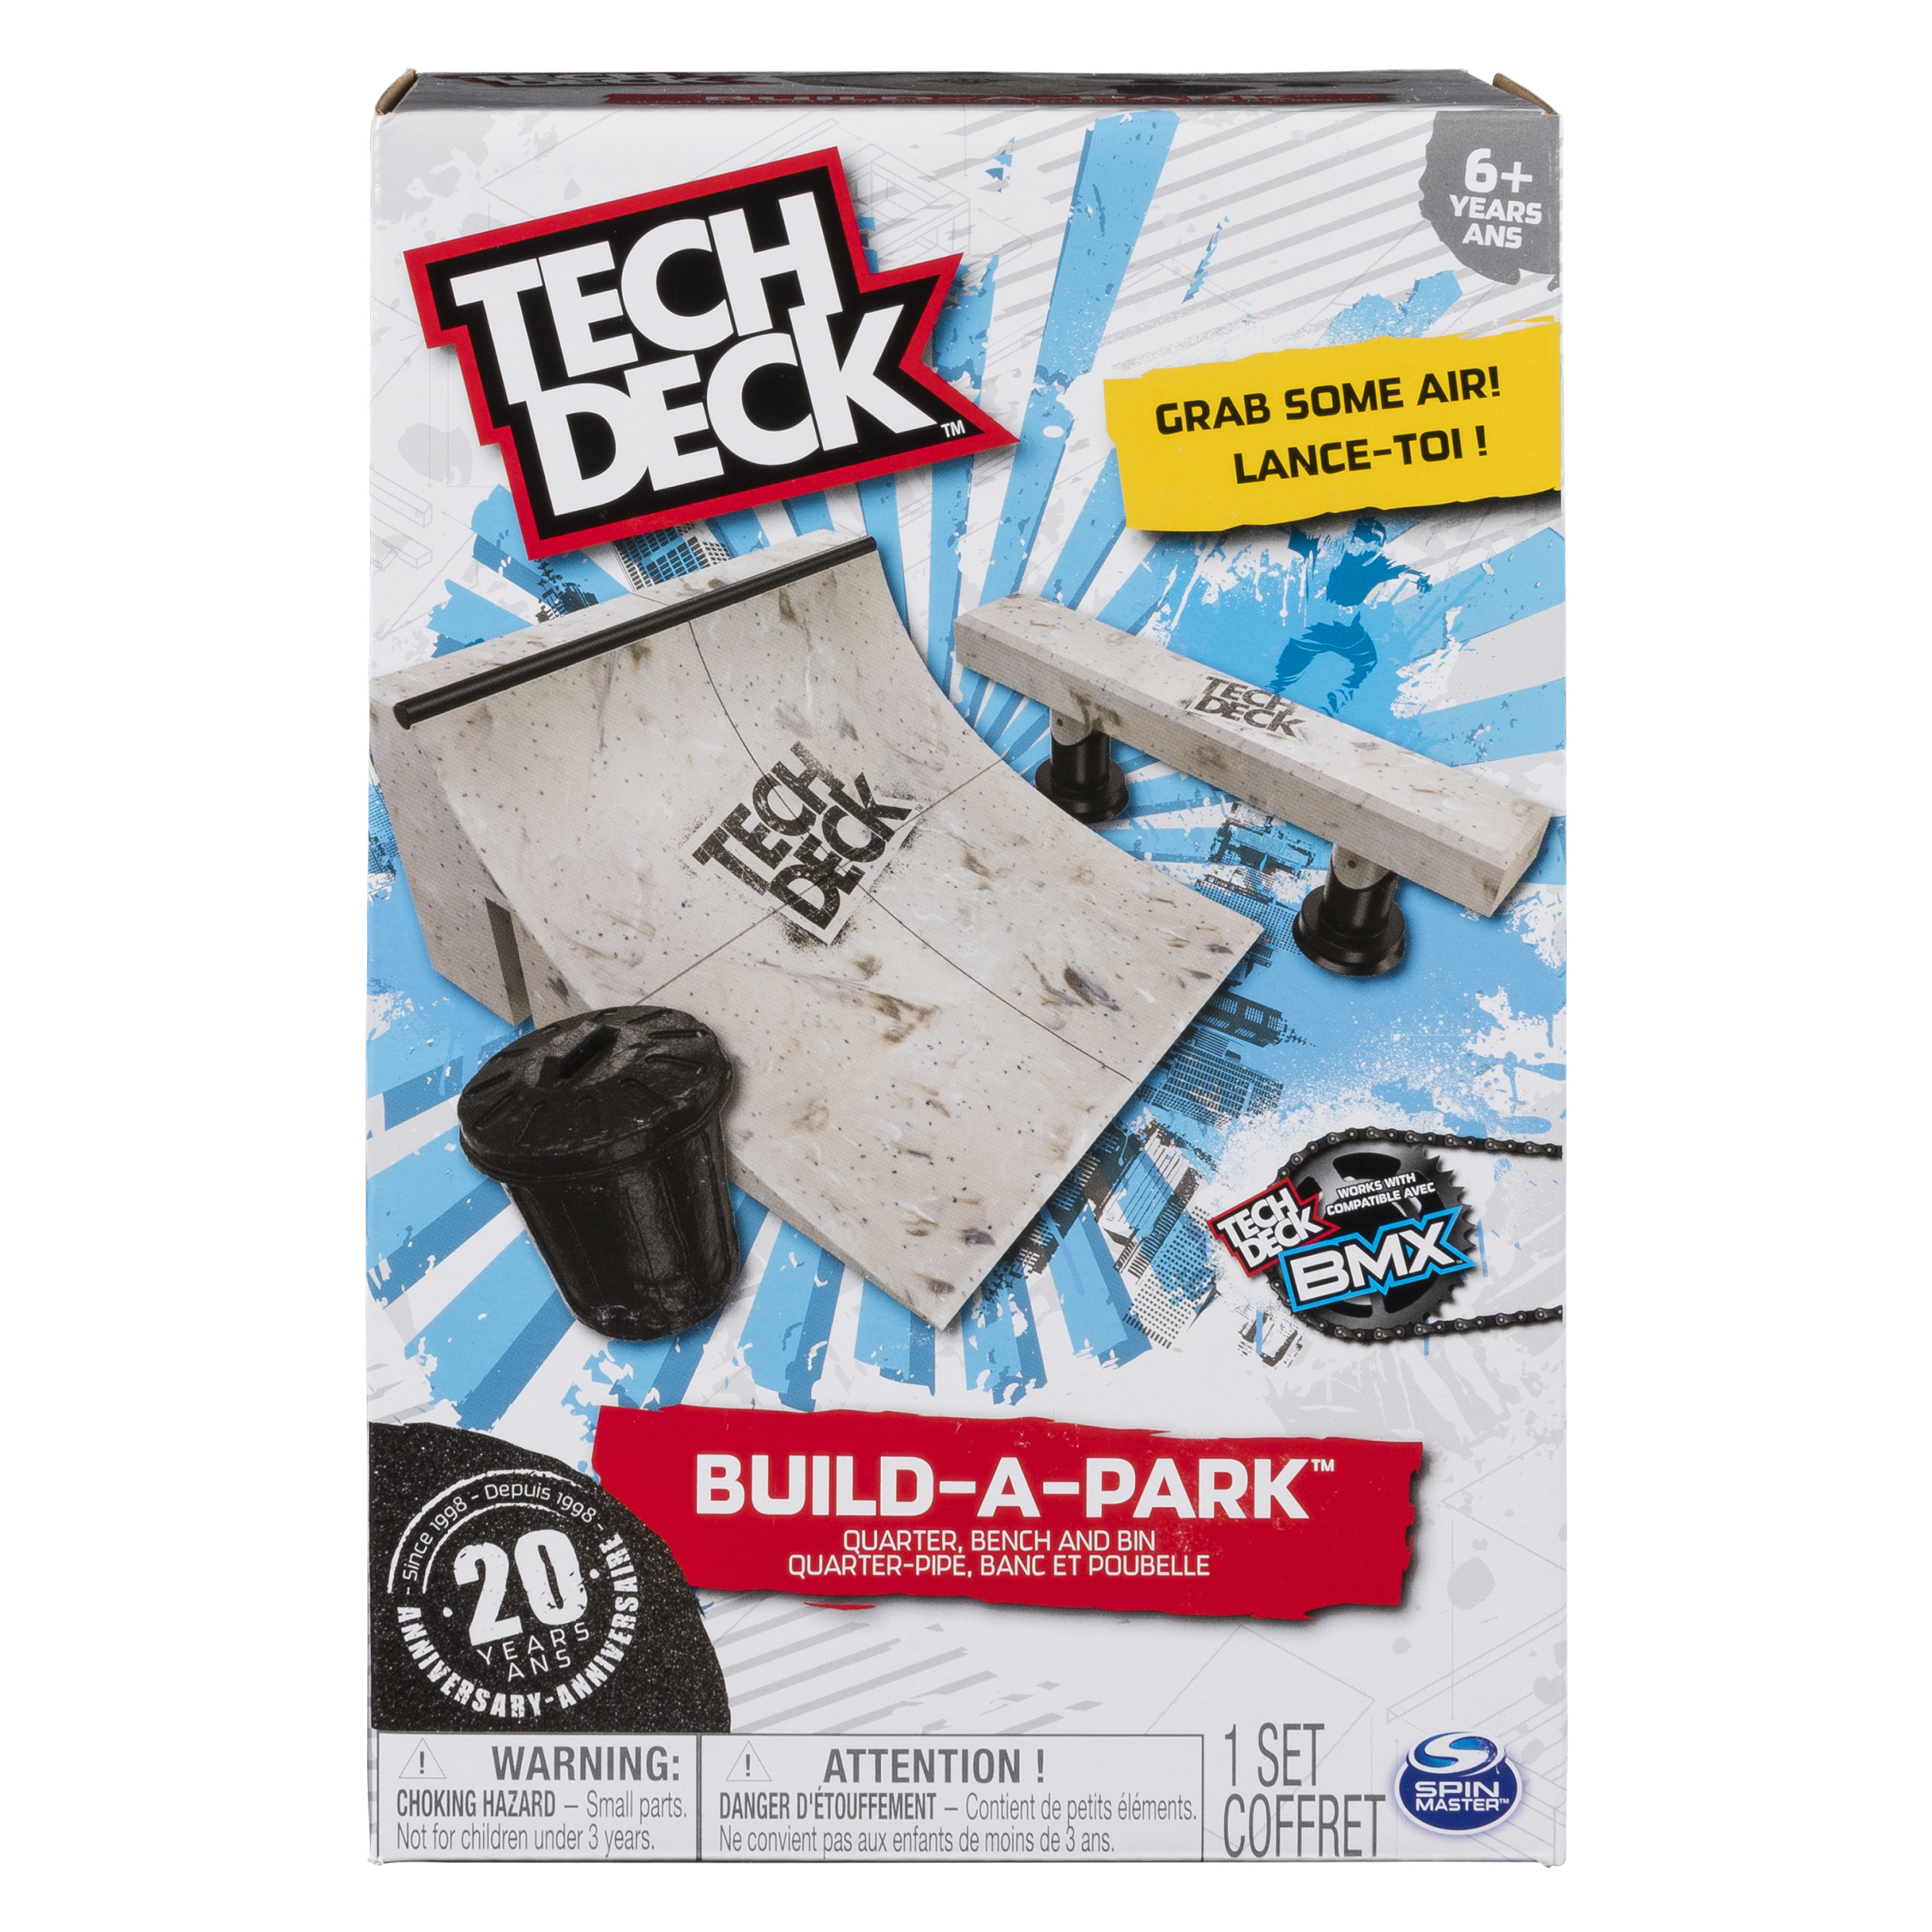 Tech Deck - Build-A-Park – Quarter, Bench, and Bin – Ramps for Tech Deck Boards and Bikes